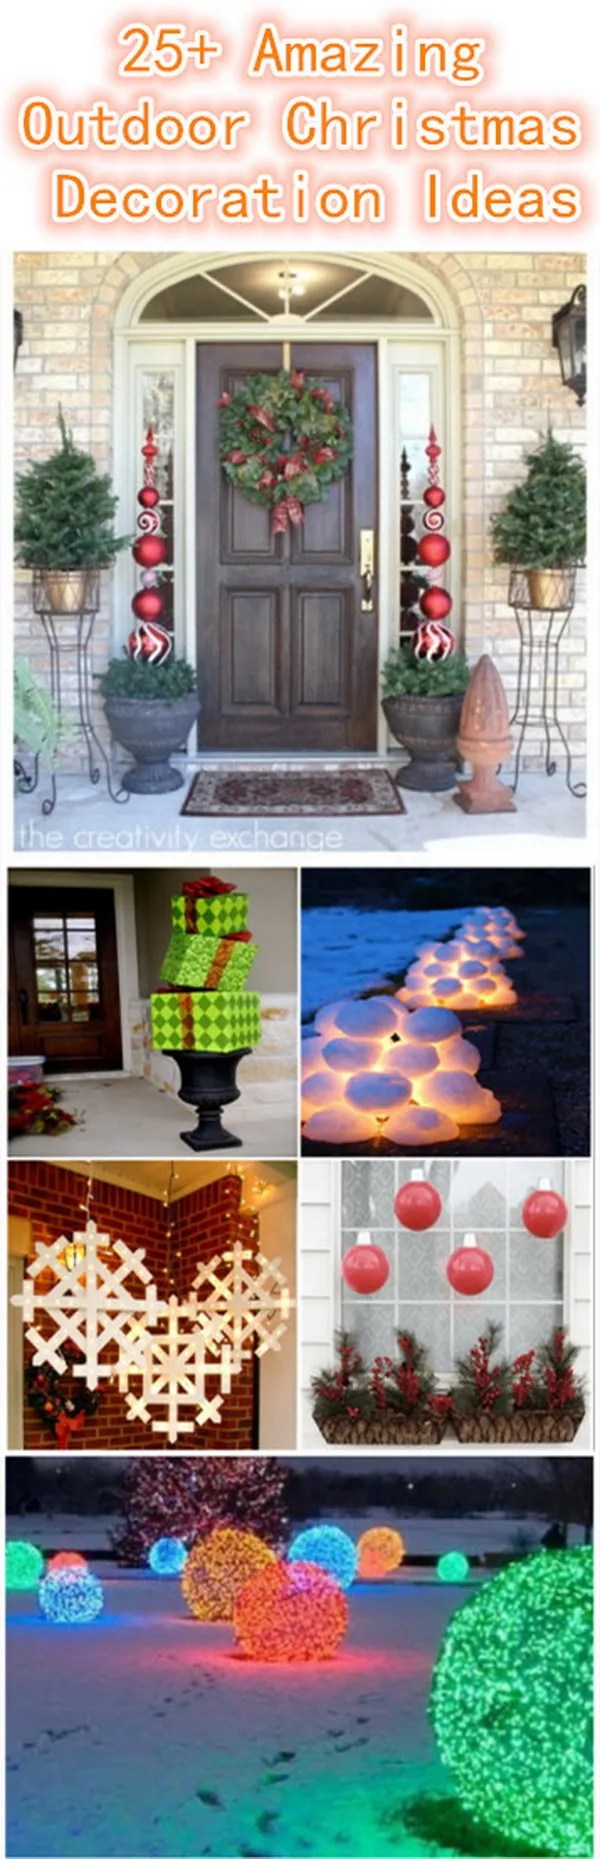 30 amazing diy outdoor christmas decoration ideas for creative juice 25 amazing diy outdoor christmas decoration ideas christmas holiday is one of the most solutioingenieria Choice Image